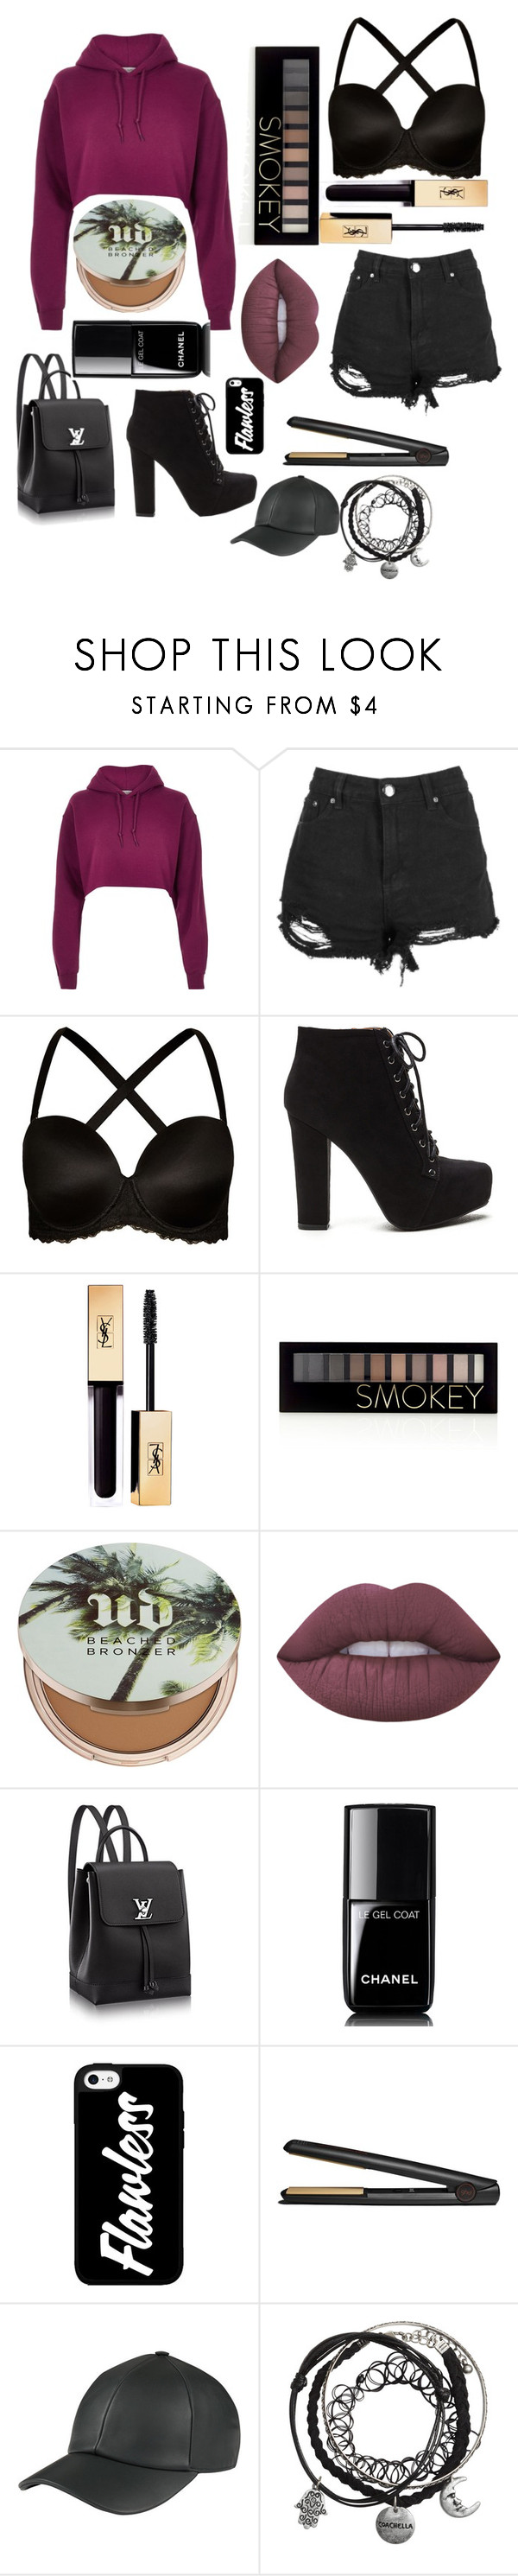 """""""Untitled #7"""" by denisegul ❤ liked on Polyvore featuring River Island, Boohoo, City Chic, Forever 21, Urban Decay, Lime Crime, Chanel and GHD"""